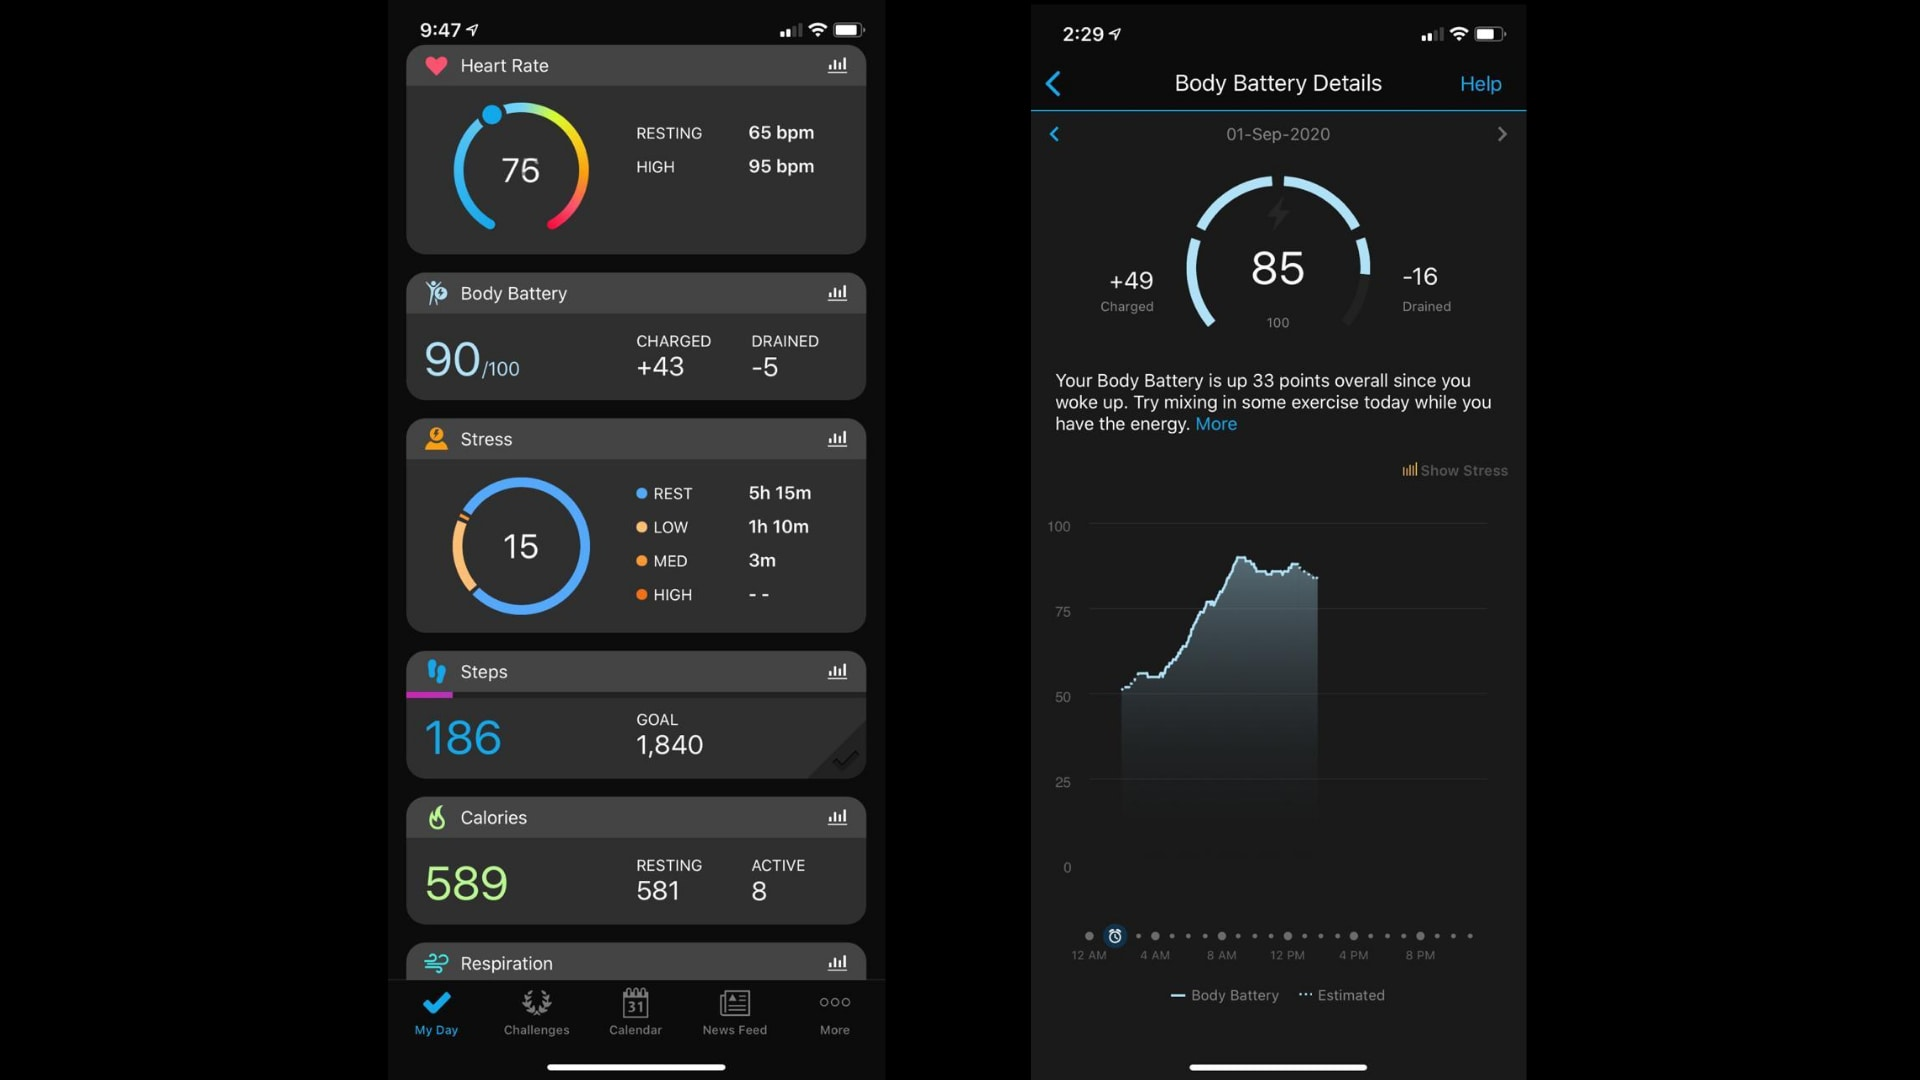 The 'My Day' page on the Garmin Connect app is very detailed and shows you all the important data you need at a glance.